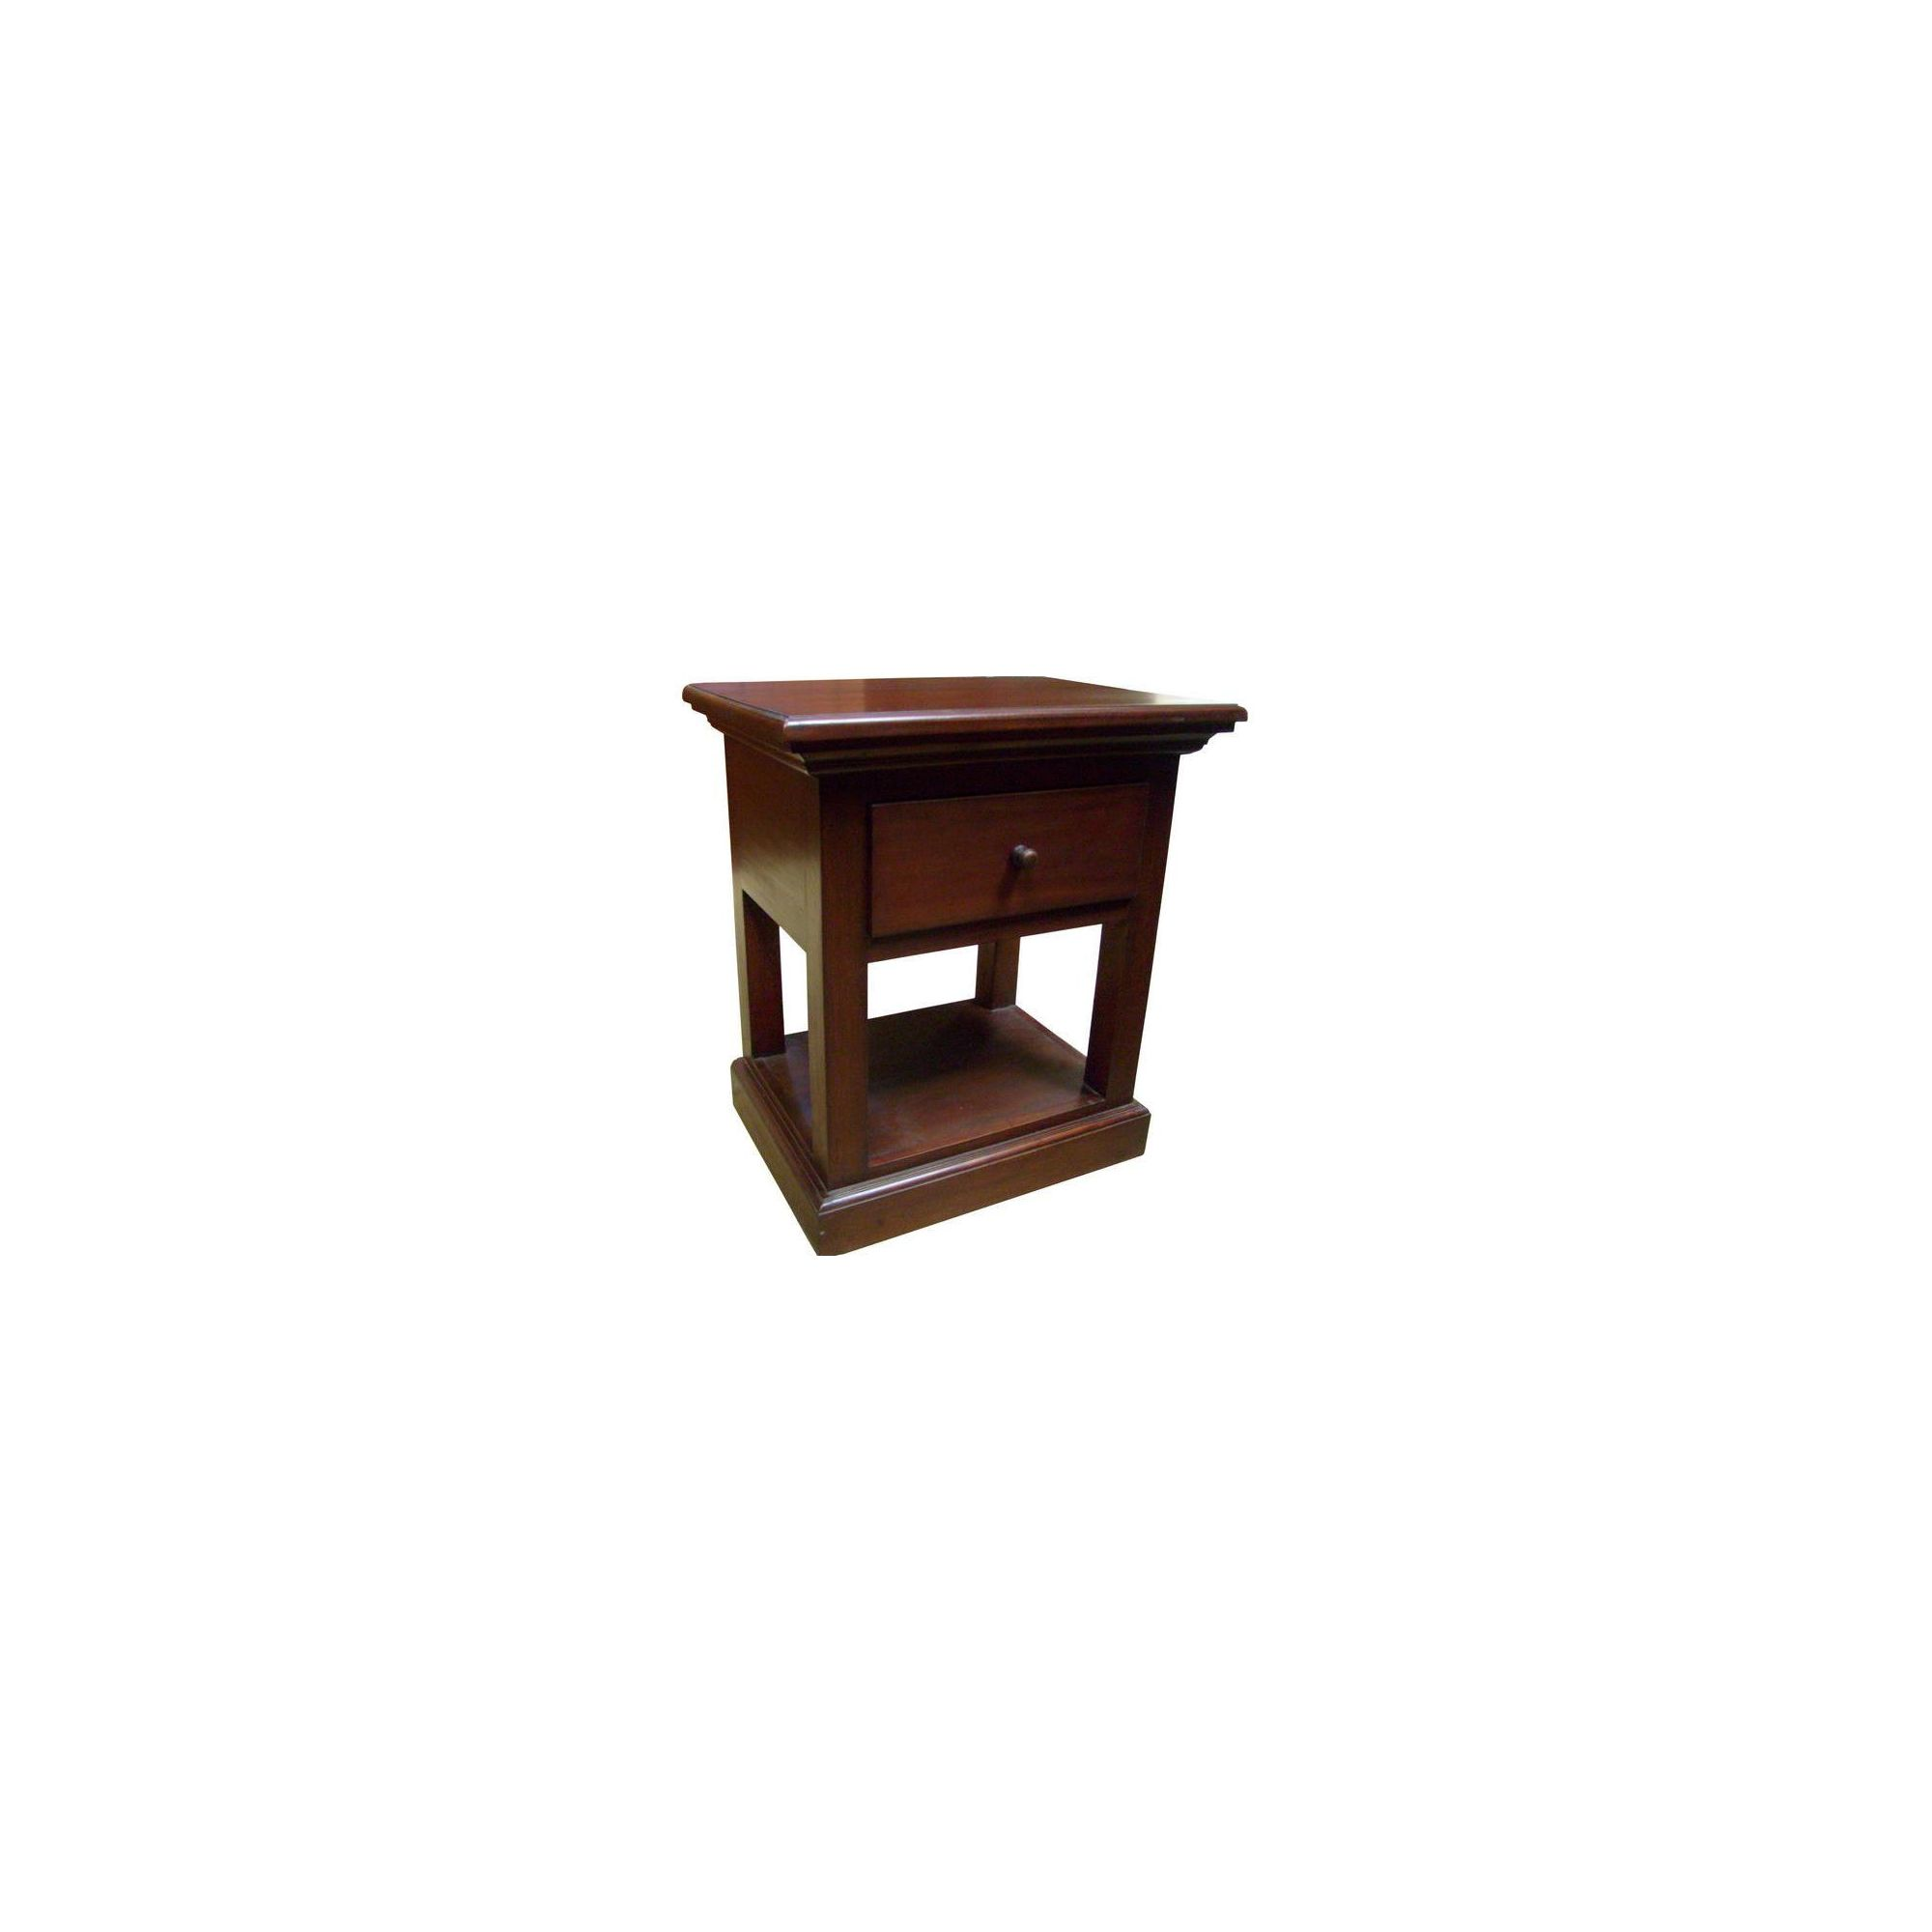 Lock stock and barrel Mahogany Corniche 1 Drawer Lamp Table in Mahogany at Tesco Direct